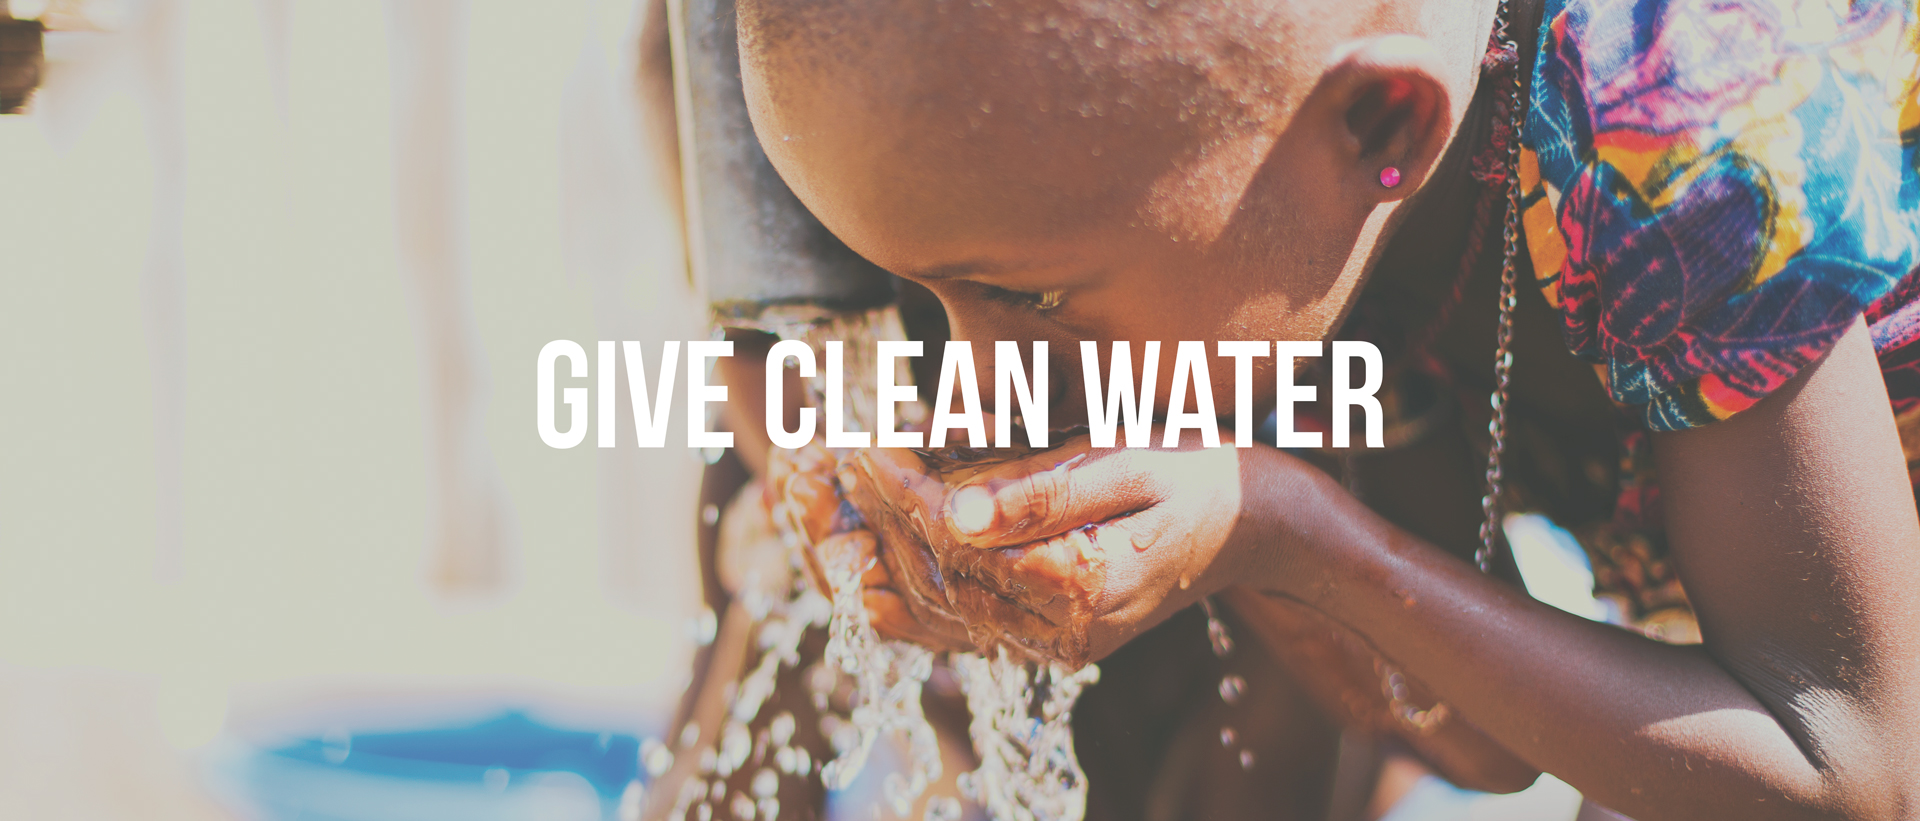 GiveCleanWater-Header2